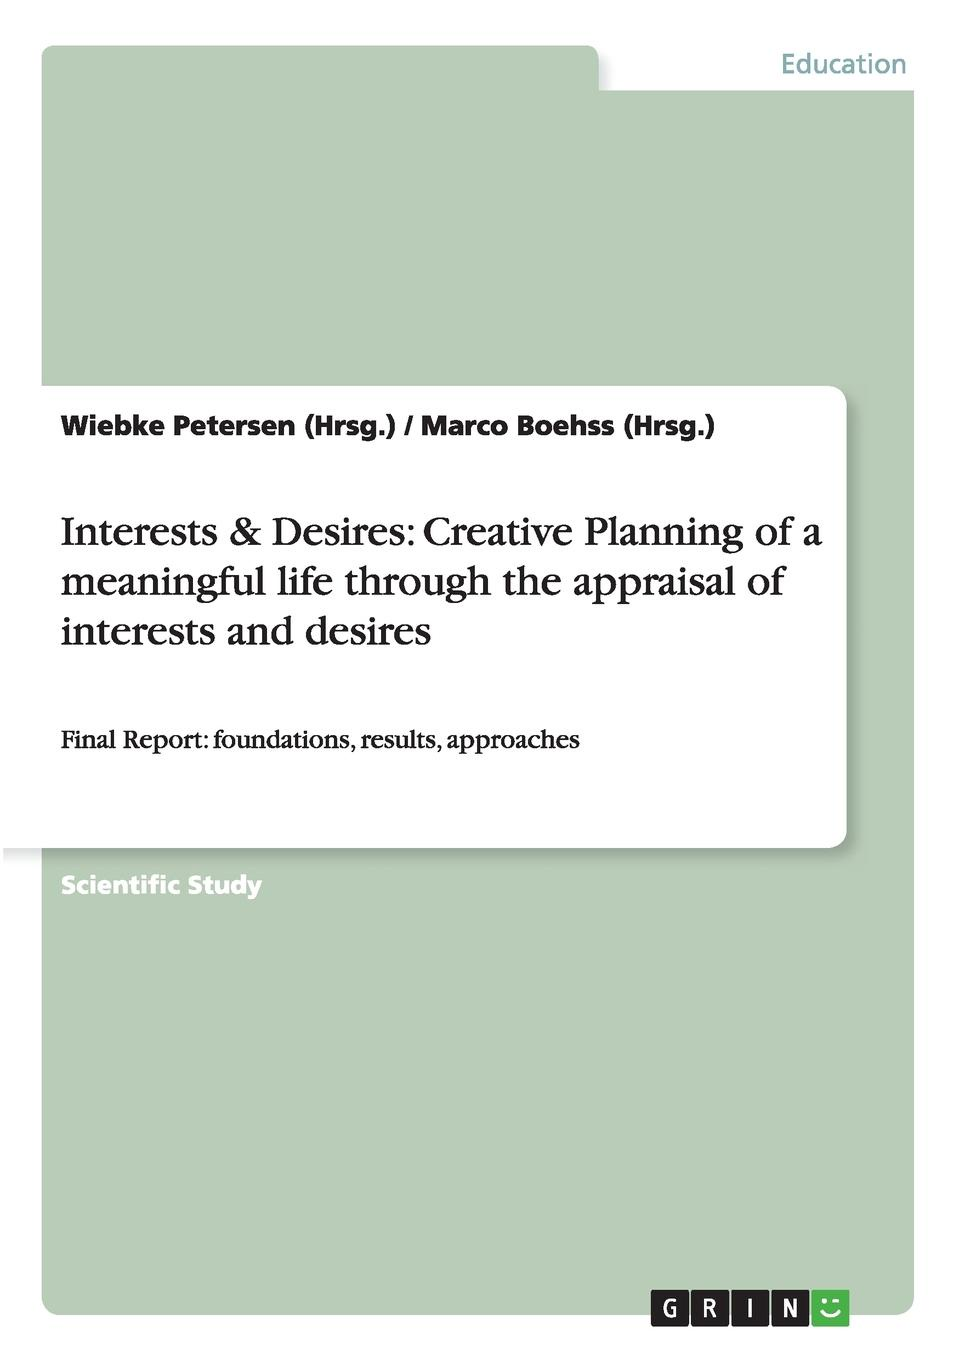 Wiebke Petersen (Hrsg.), Marco Boehss (Hrsg.) Interests . Desires. Creative Planning of a meaningful life through the appraisal of interests and desires dmitrii emets methodius buslaev the scroll of desires